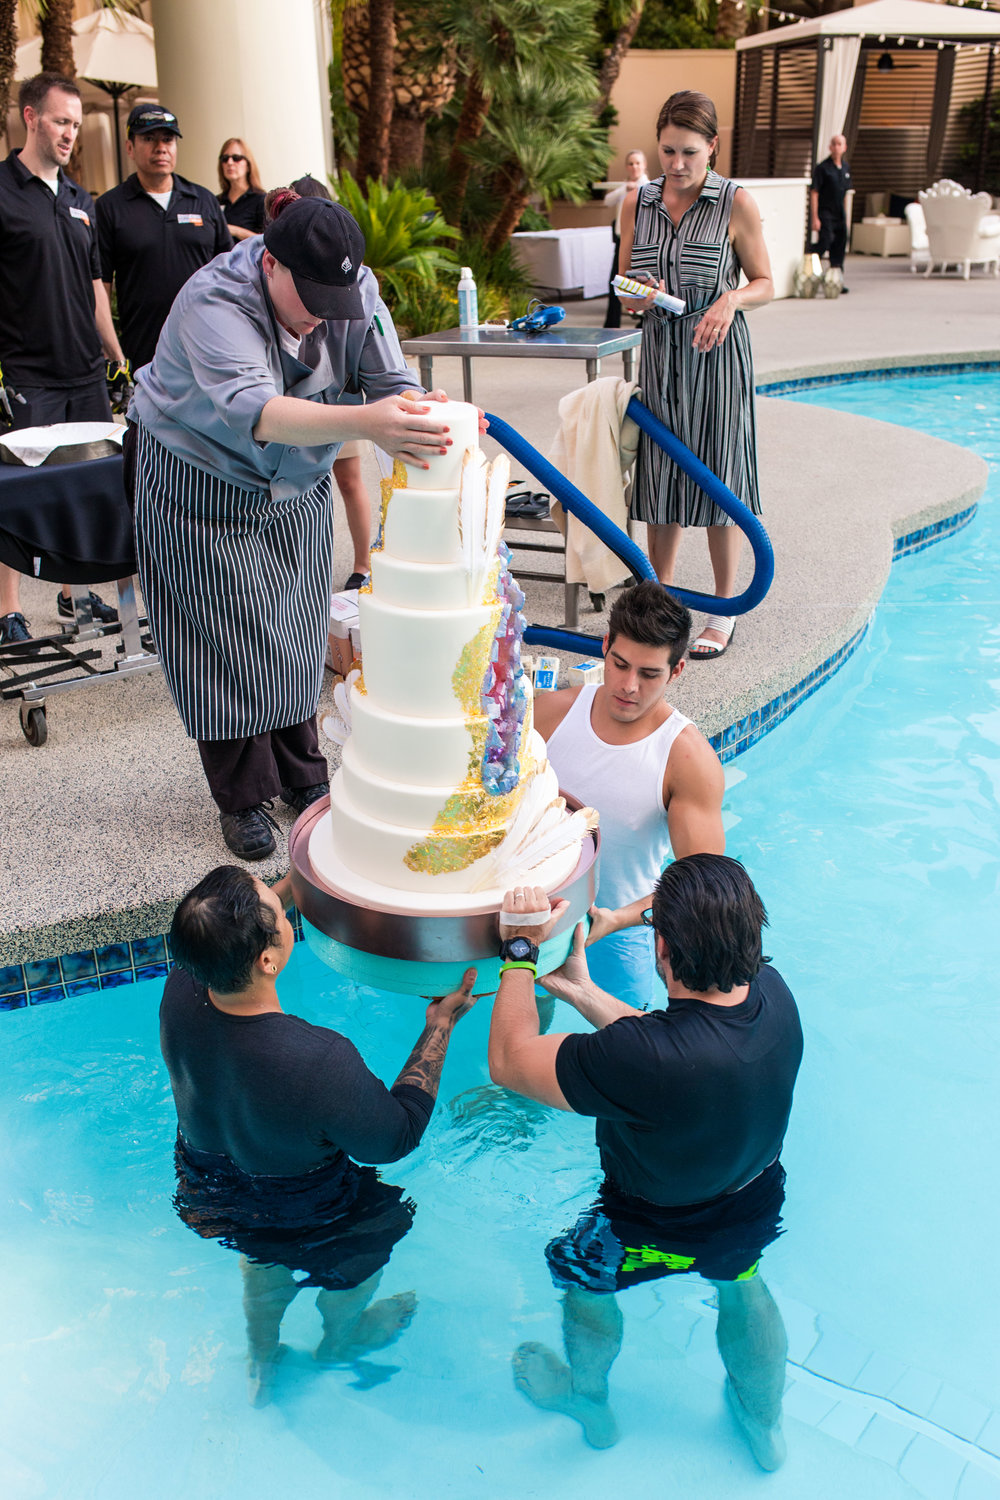 Loading In the Wedding Cake. Wedding Planning by  Andrea Eppolito Events   ·  Photography by  Shandro Photo    ·  Wedding Venue  Four Seasons Las Vegas   ·  Floral and Decor by  Destination by Design   ·  Cake by  Four Seasons Las Vegas   ·  Chandeliers and Lighting by  LED Unplugged   ·  Dress by  Berta